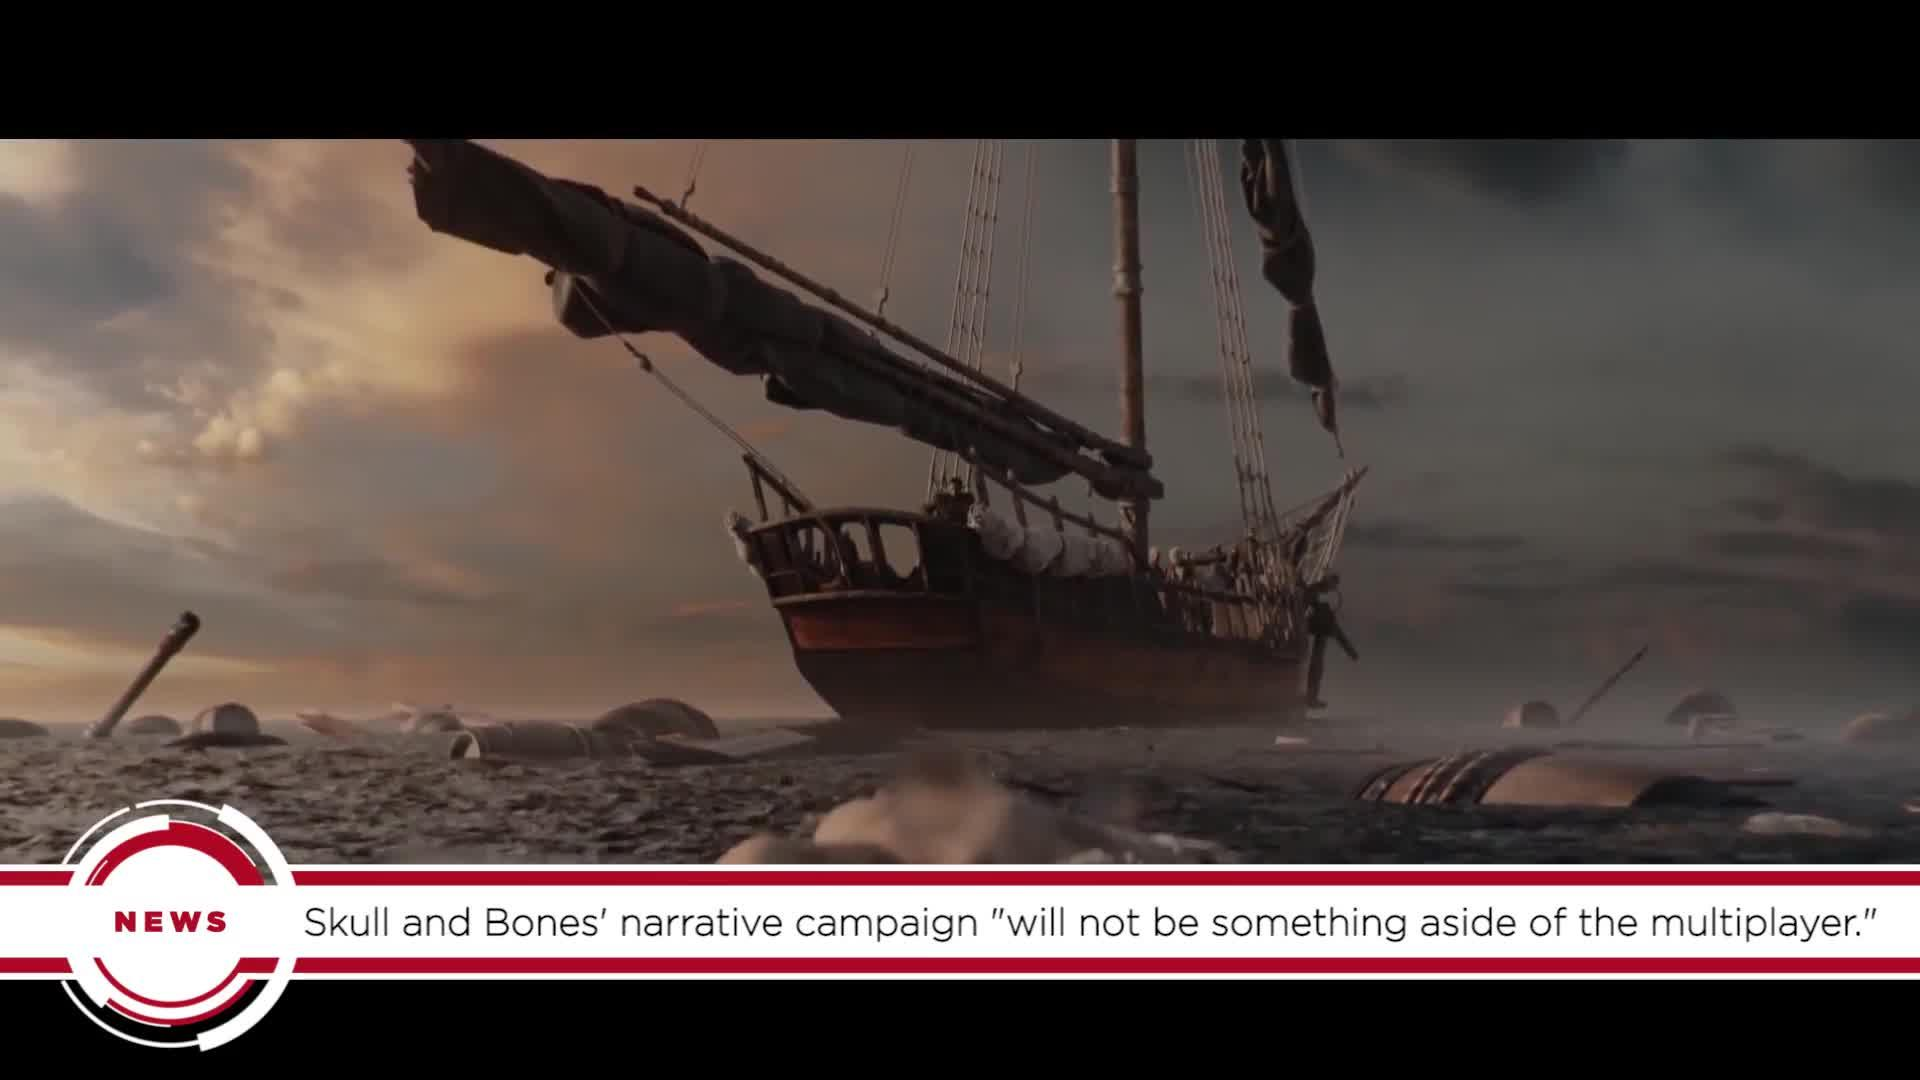 GS News Update: Pirate Ship Game Skull And Bones Will Have Narrative Campaign, Ubisoft Confirms